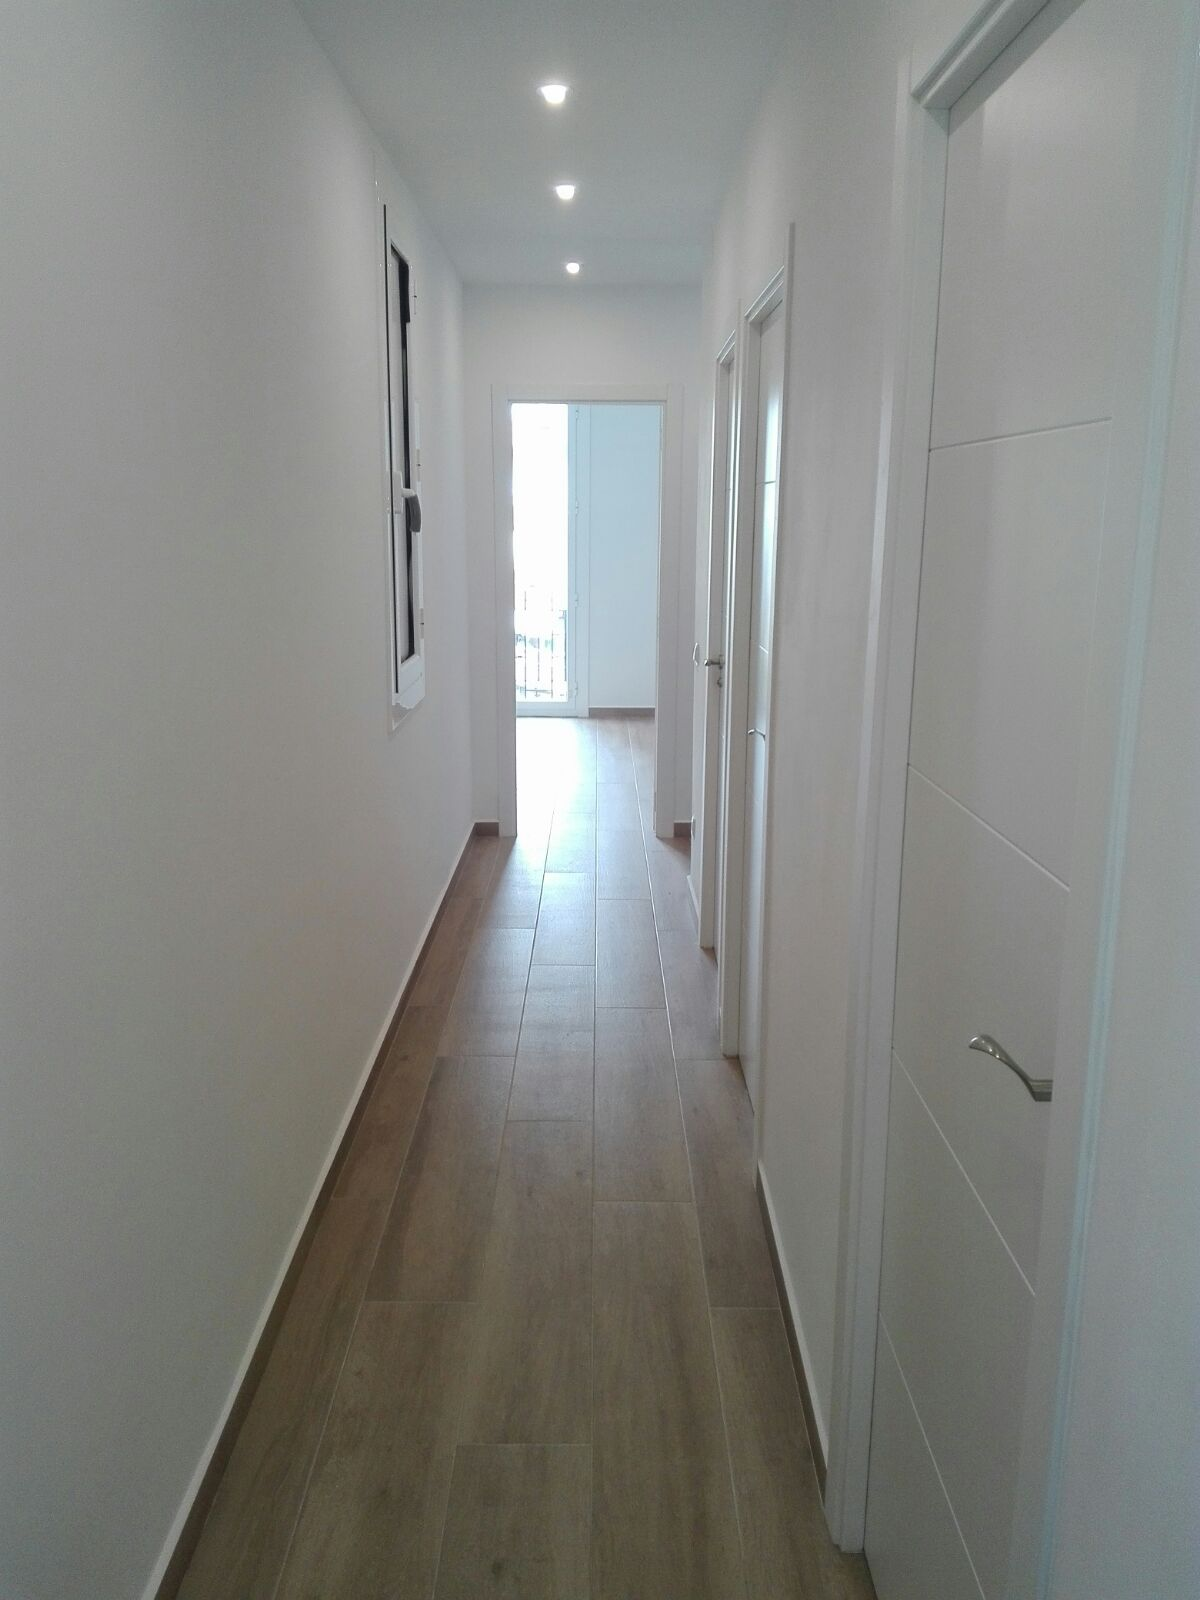 Apartment in Barcelona - eixample. Balcony.3 bedrooms. For sale: 380.000 €.